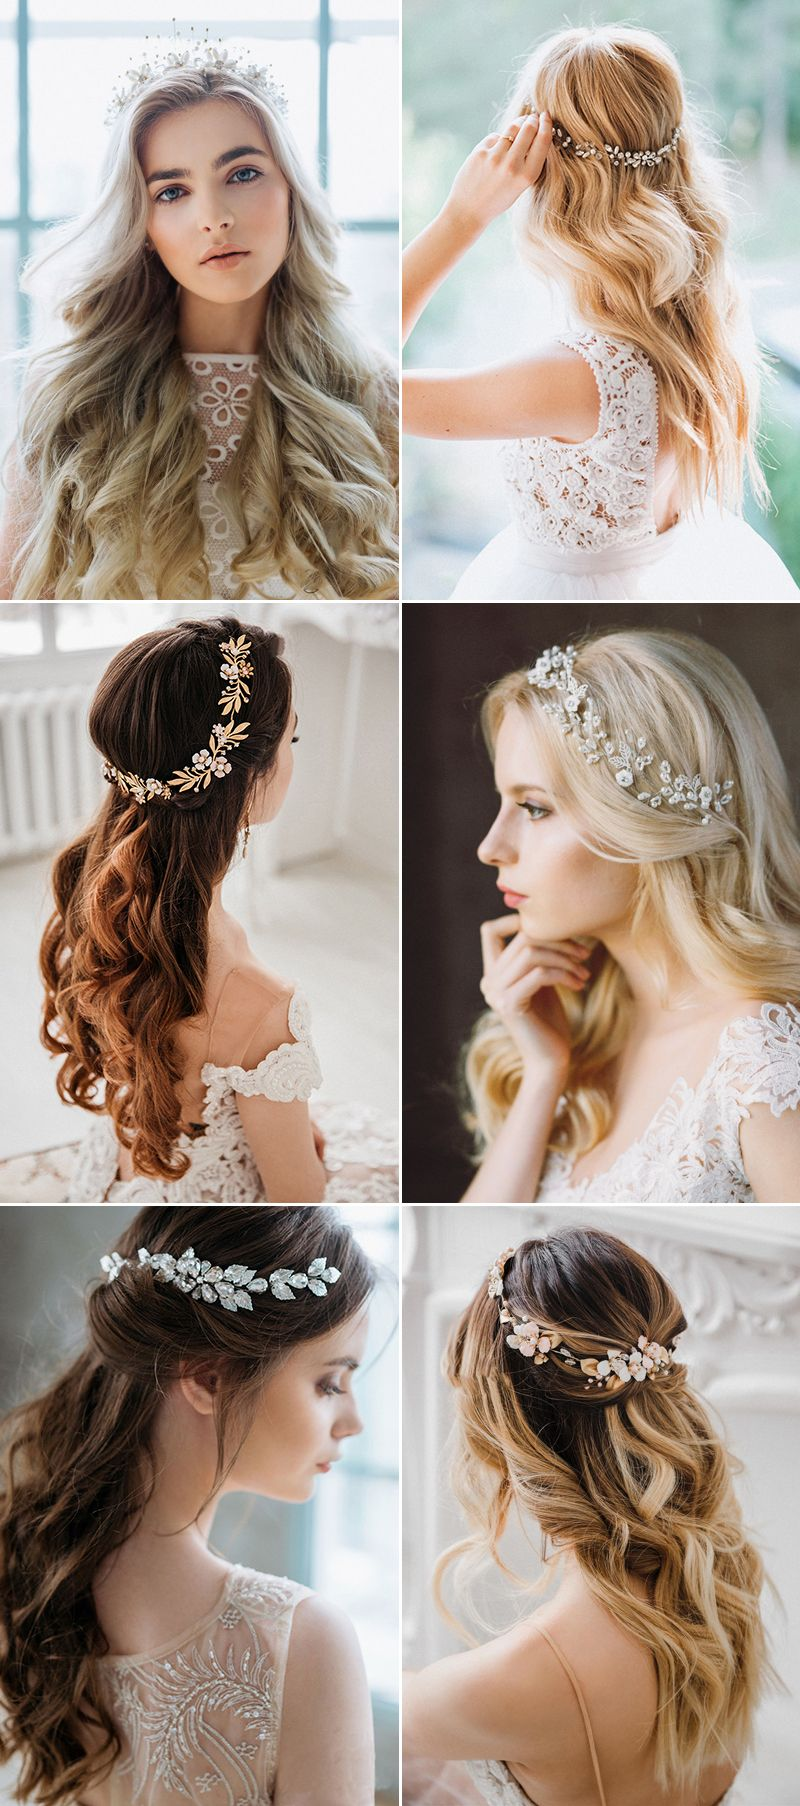 How To Wear Your Hair Down For Your Wedding 30 Chic Hair Accessories To Style Free Flowing Long Hair Bridal Hair Headpiece Bridal Hair Down Down Hairstyles